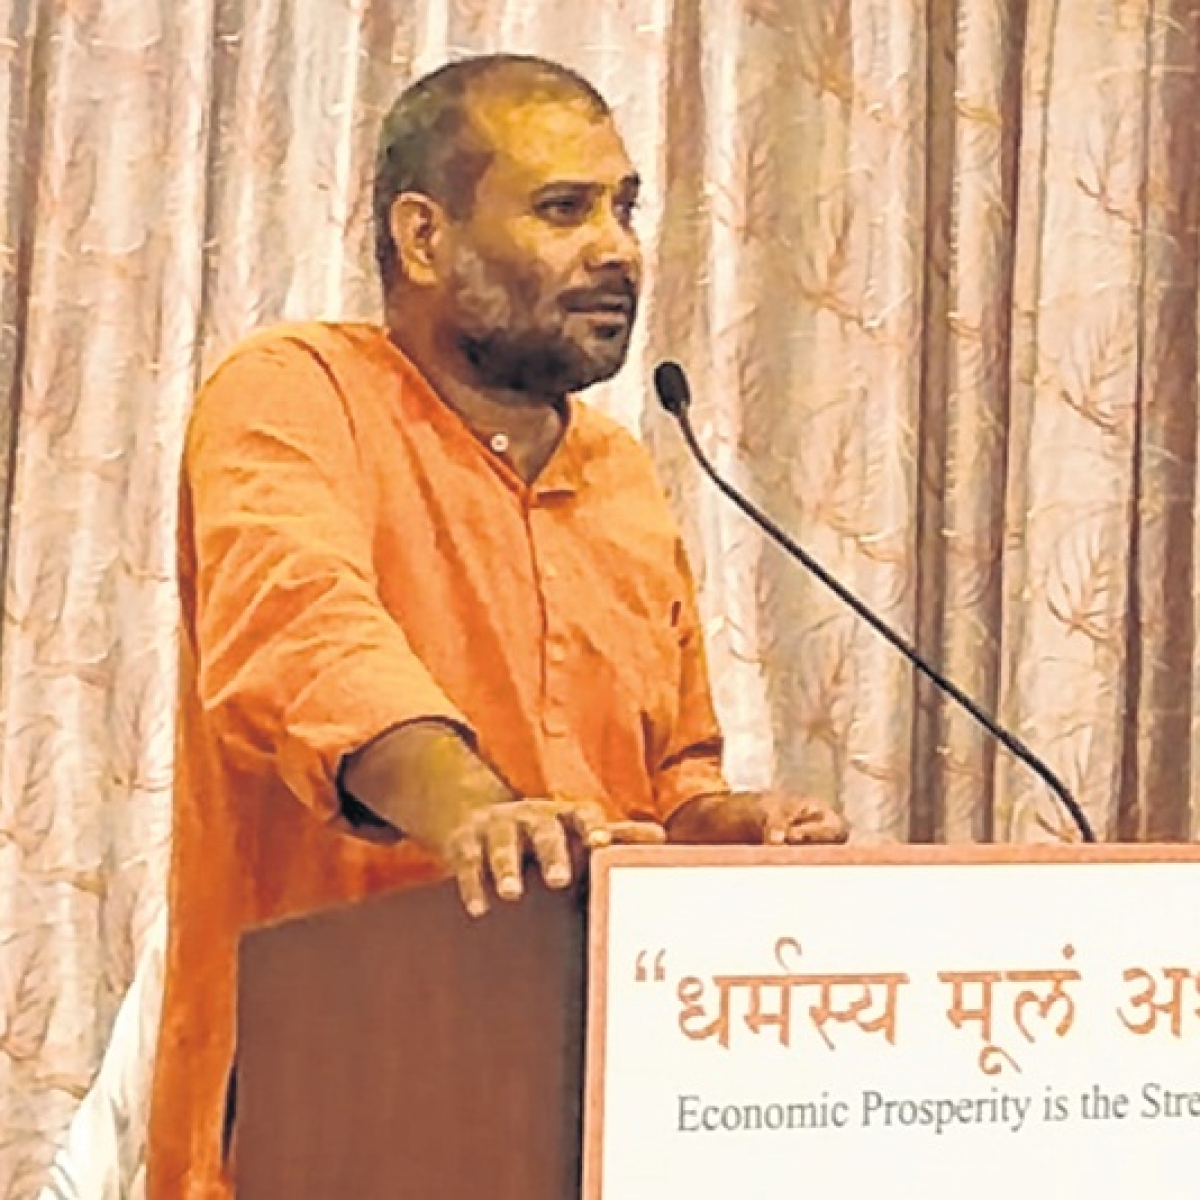 Double digit growth is not easy for India: Swami Vigyananand